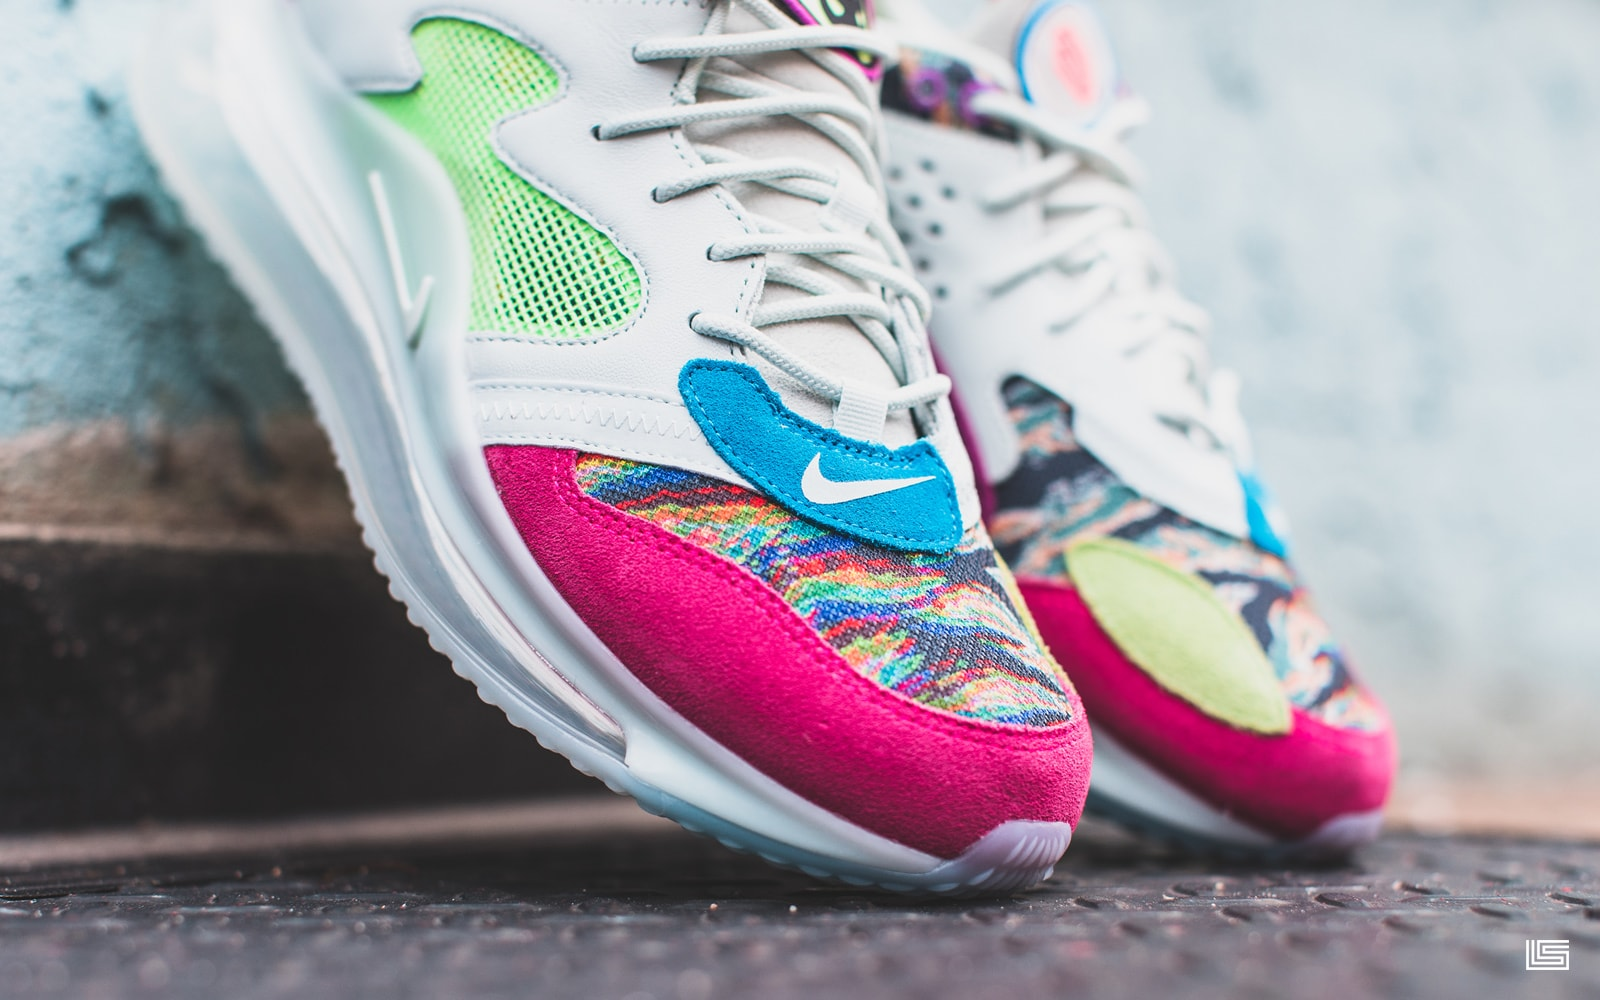 SET TO DROP: NIKE AIR MAX 720 X OBJ 'YOUNG KING OF THE DRIP'